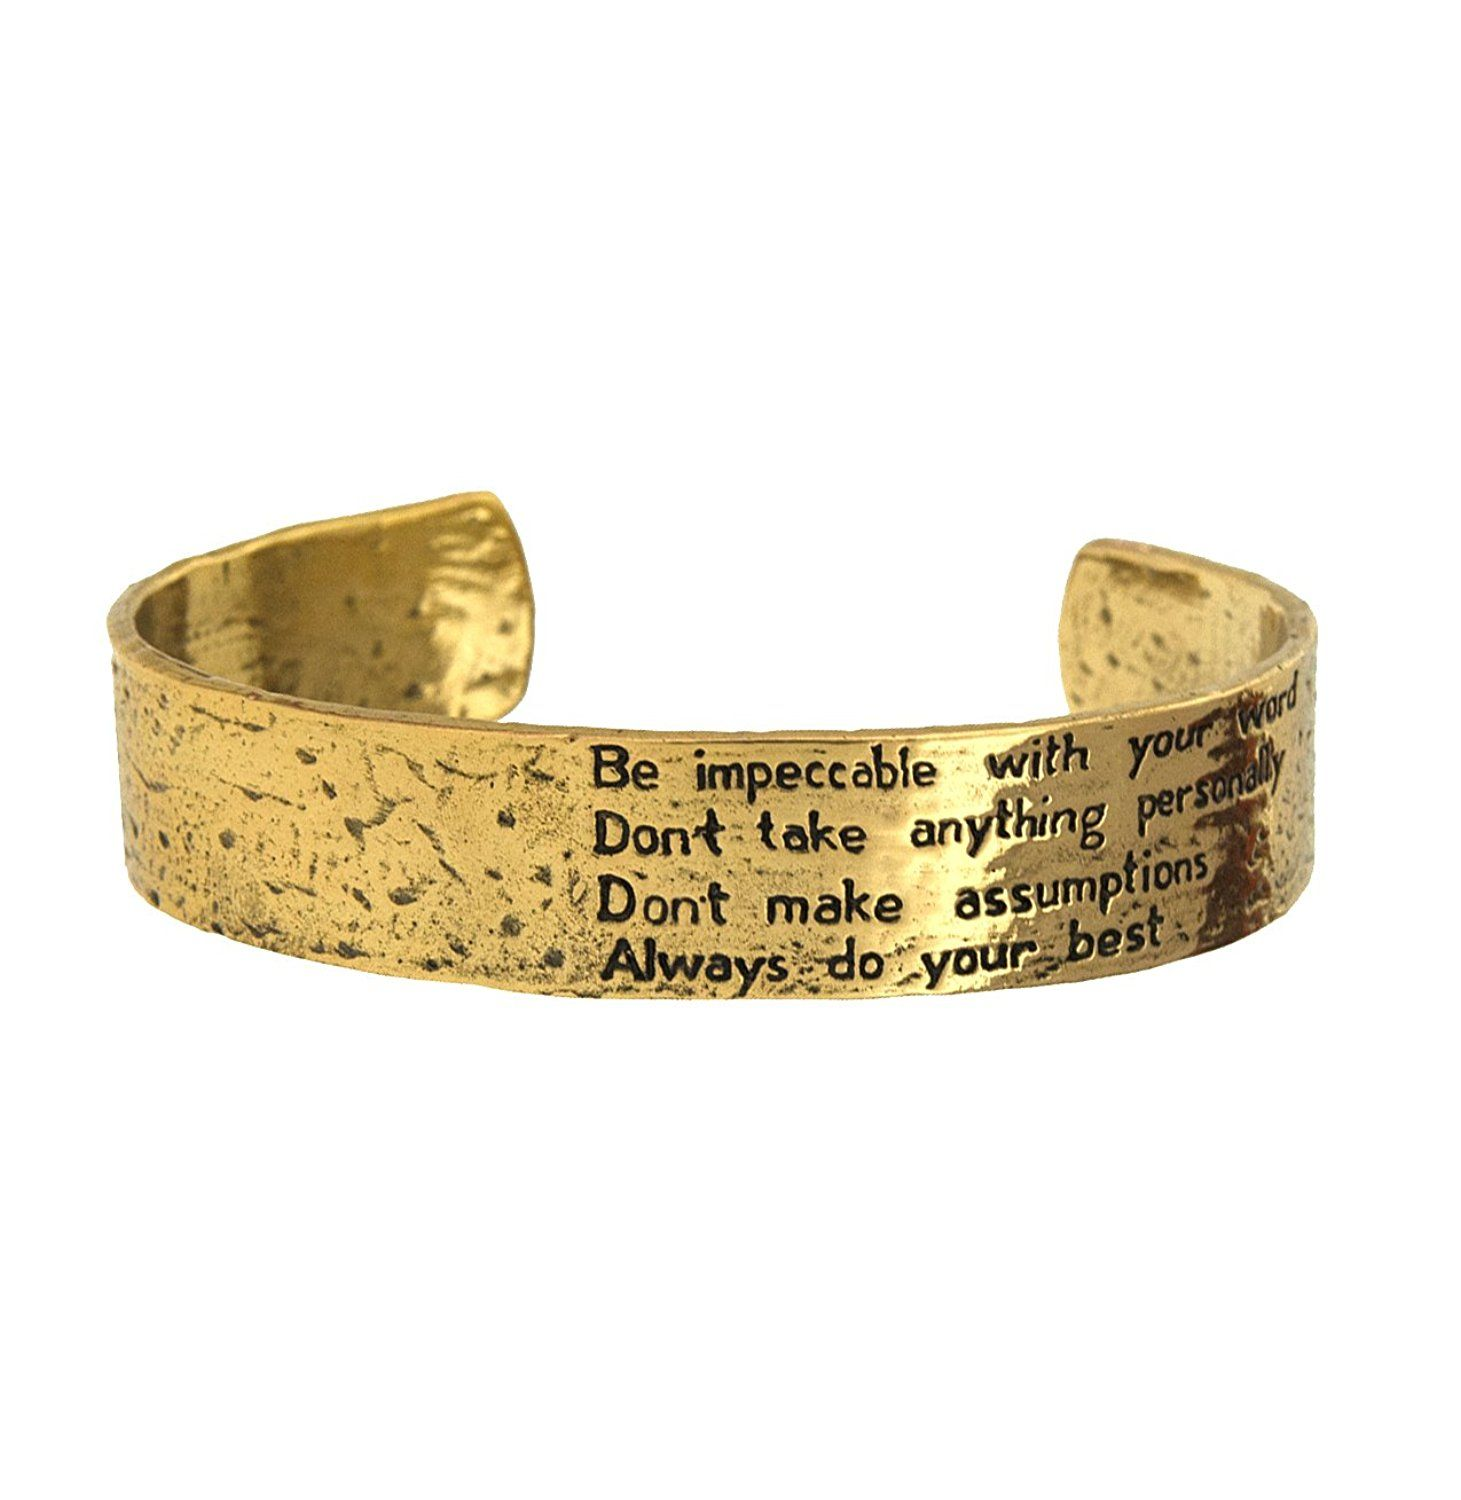 The Four Agreements Reminder Cuff Read More Reviews Of The